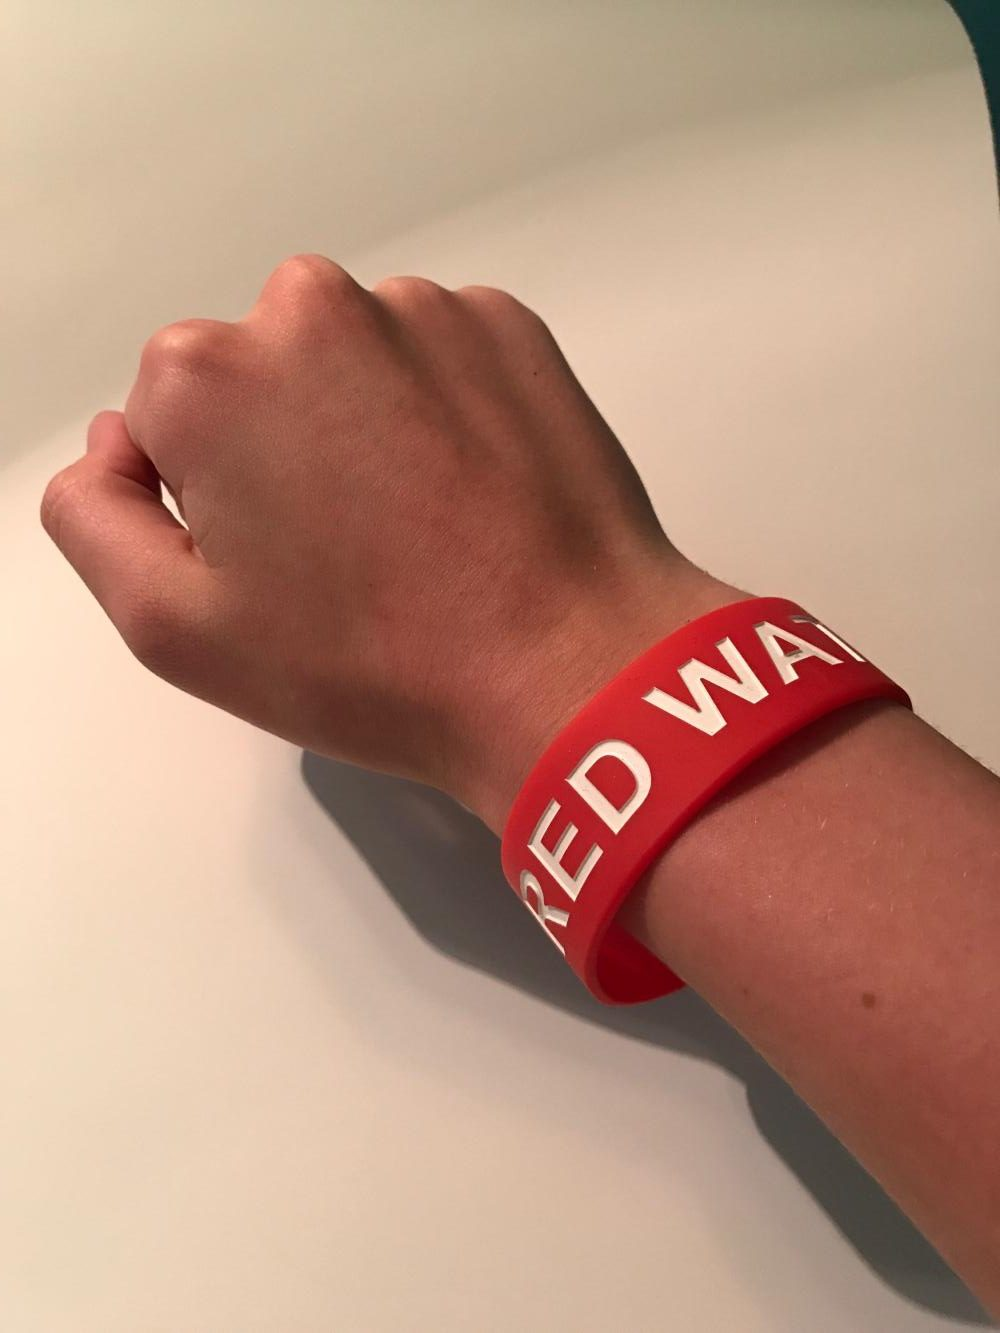 Red alert for safety: Bracelets identify Red Watch Band members